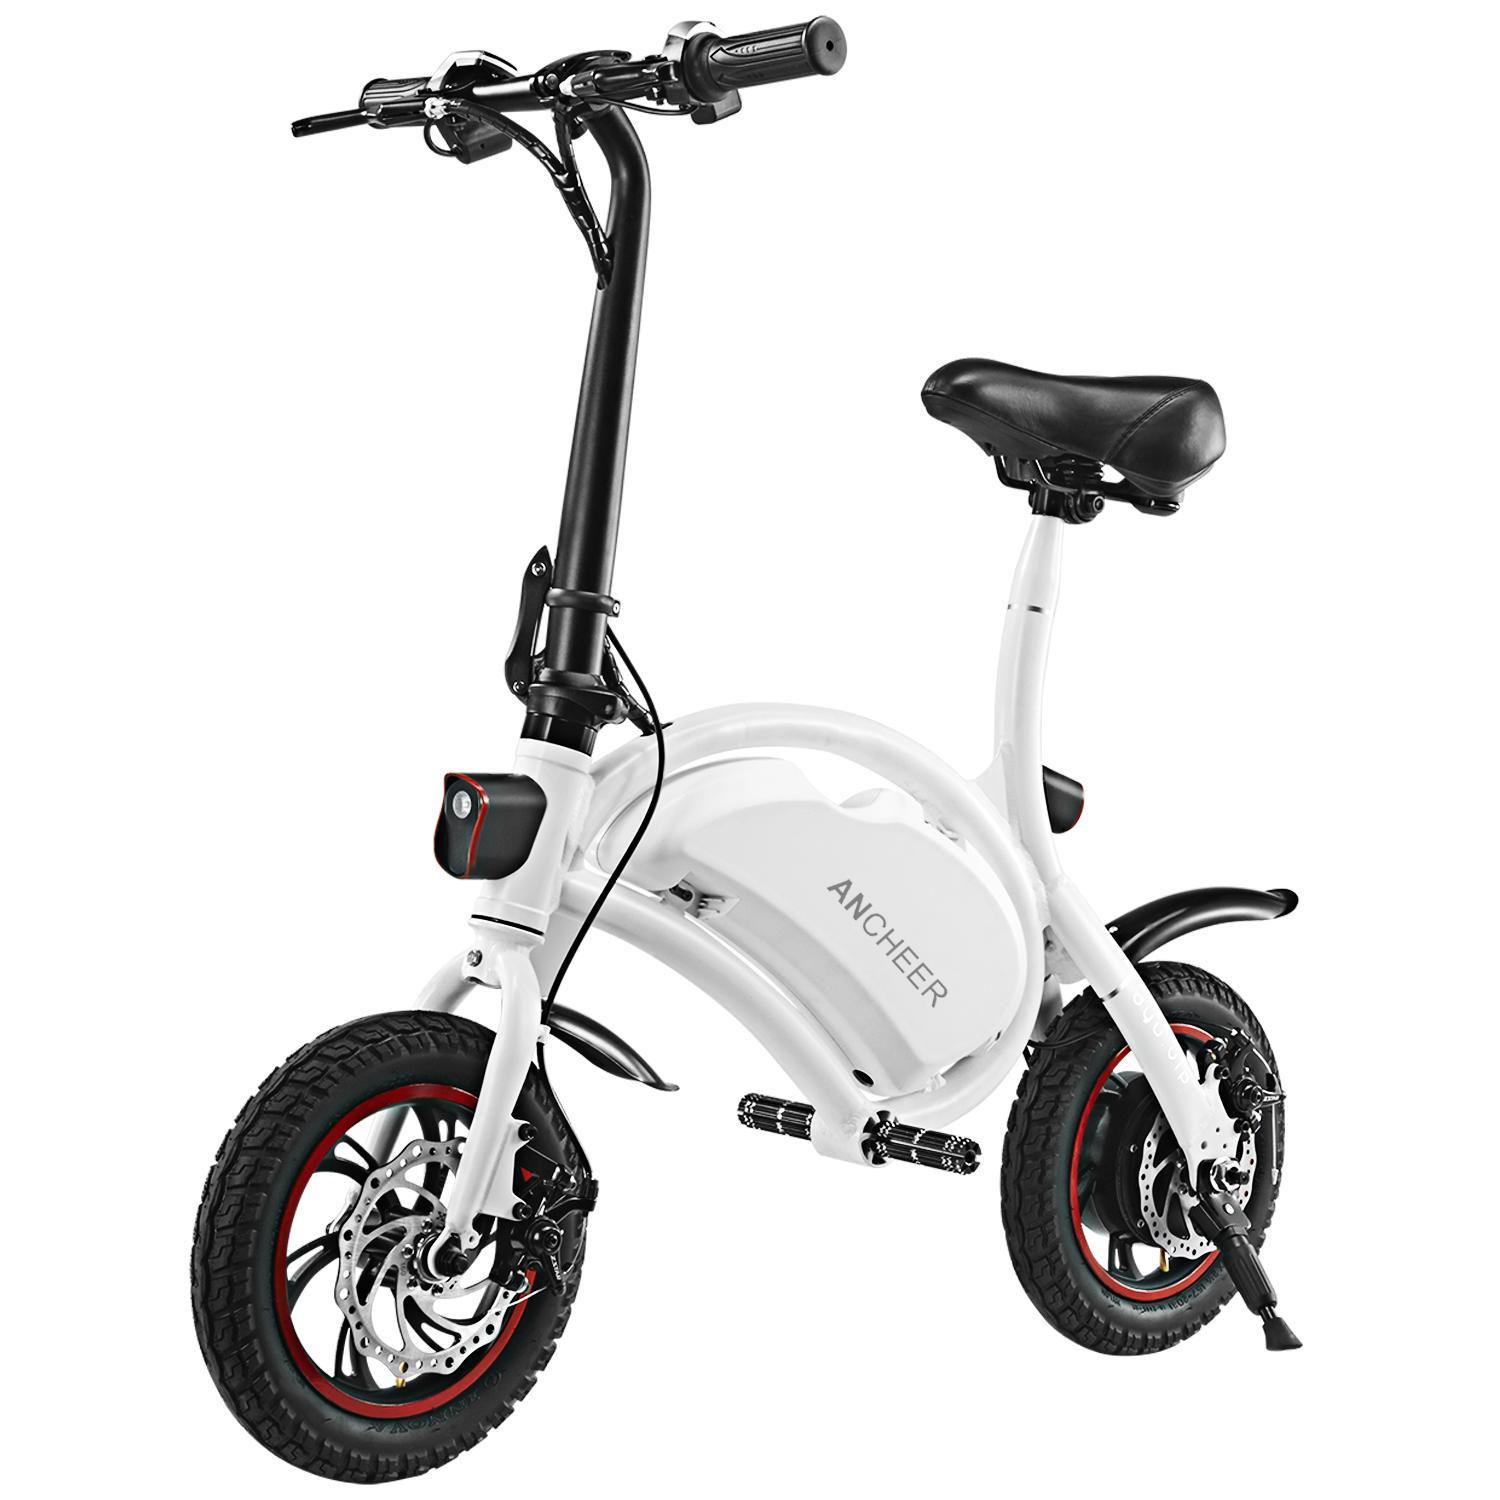 ANCHEER Bluetooth System+APP Control Folding Electric Bike 350W 36V 6AH Lithium Battery Smart Electric Bicycle With Automatic Headlight